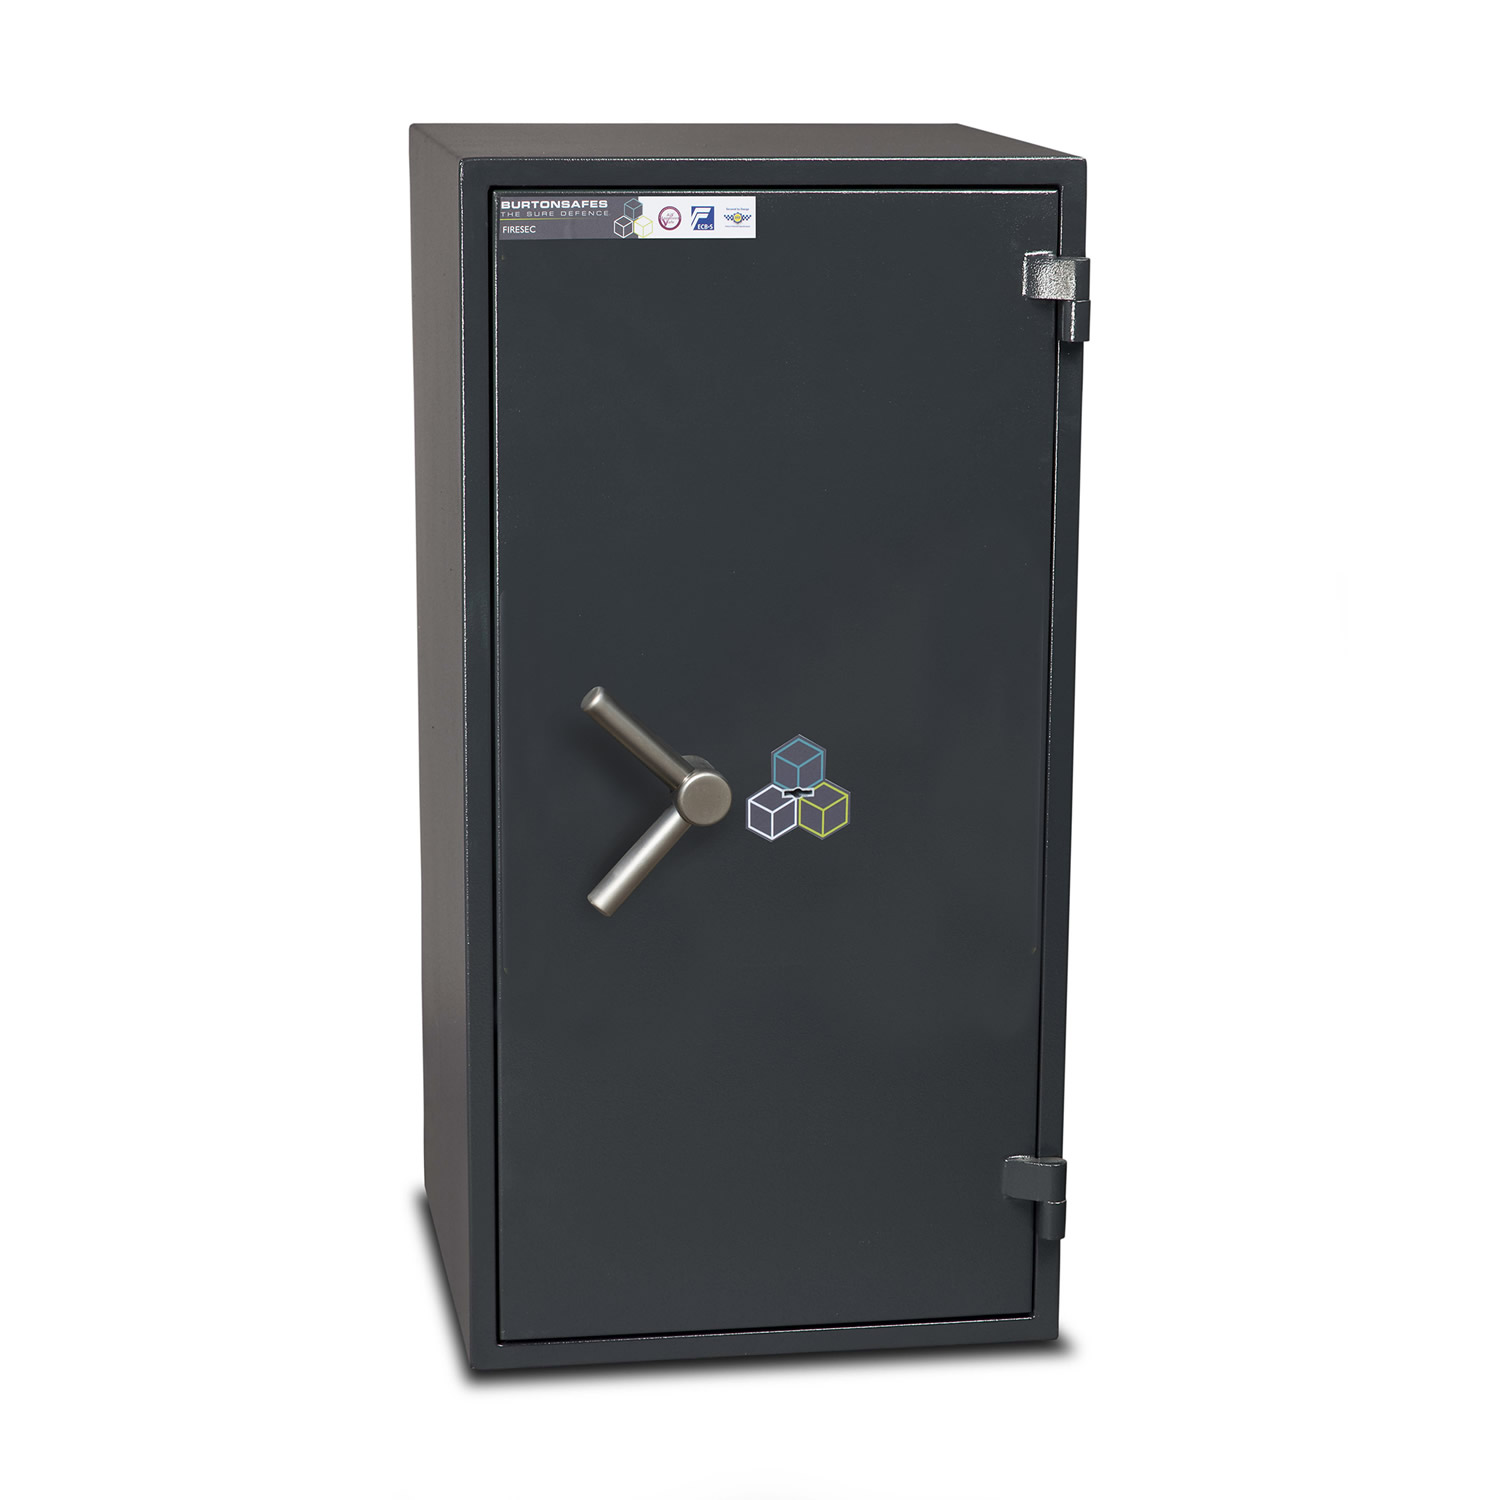 Burton Firesec 10/60 Fire and Security Safe with Key Lock